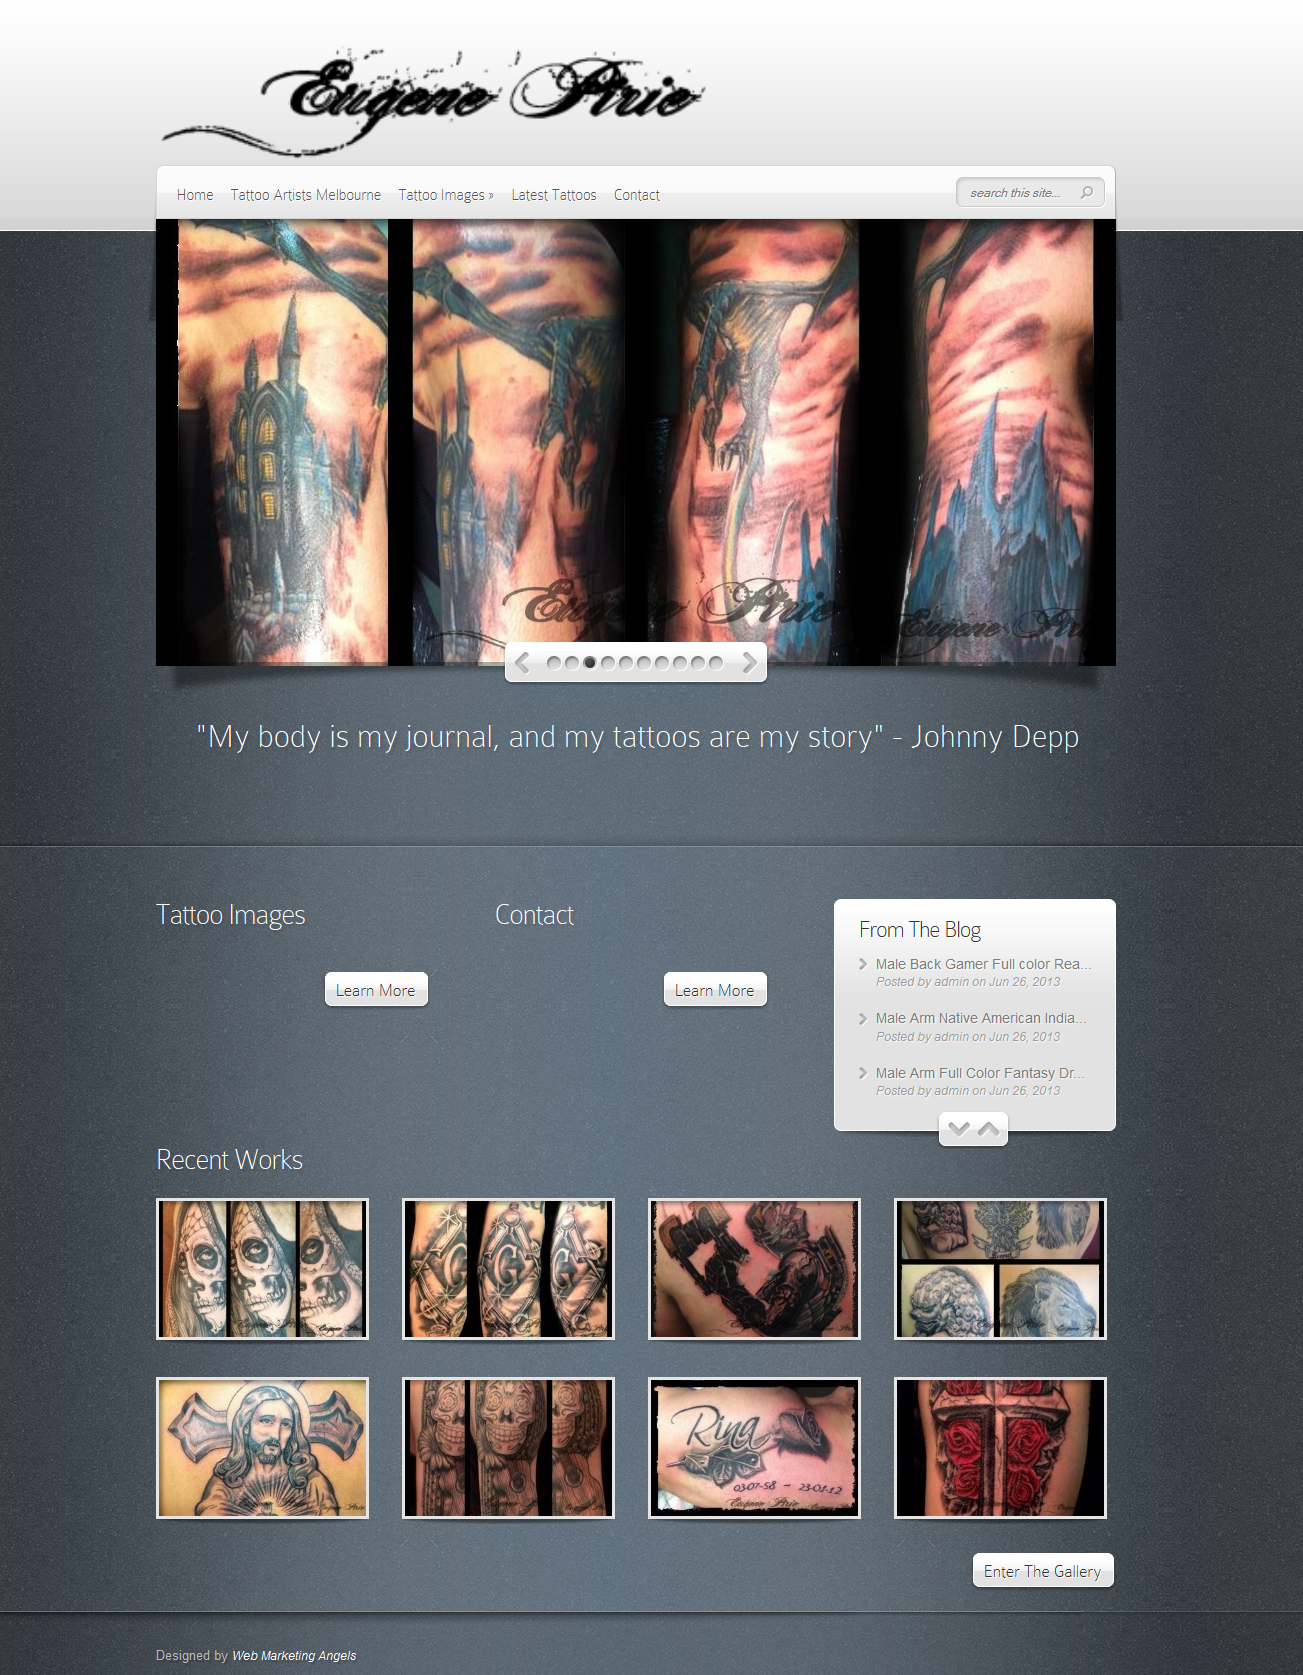 Eugene Pirie – Tattoo Artist Melbourne Website